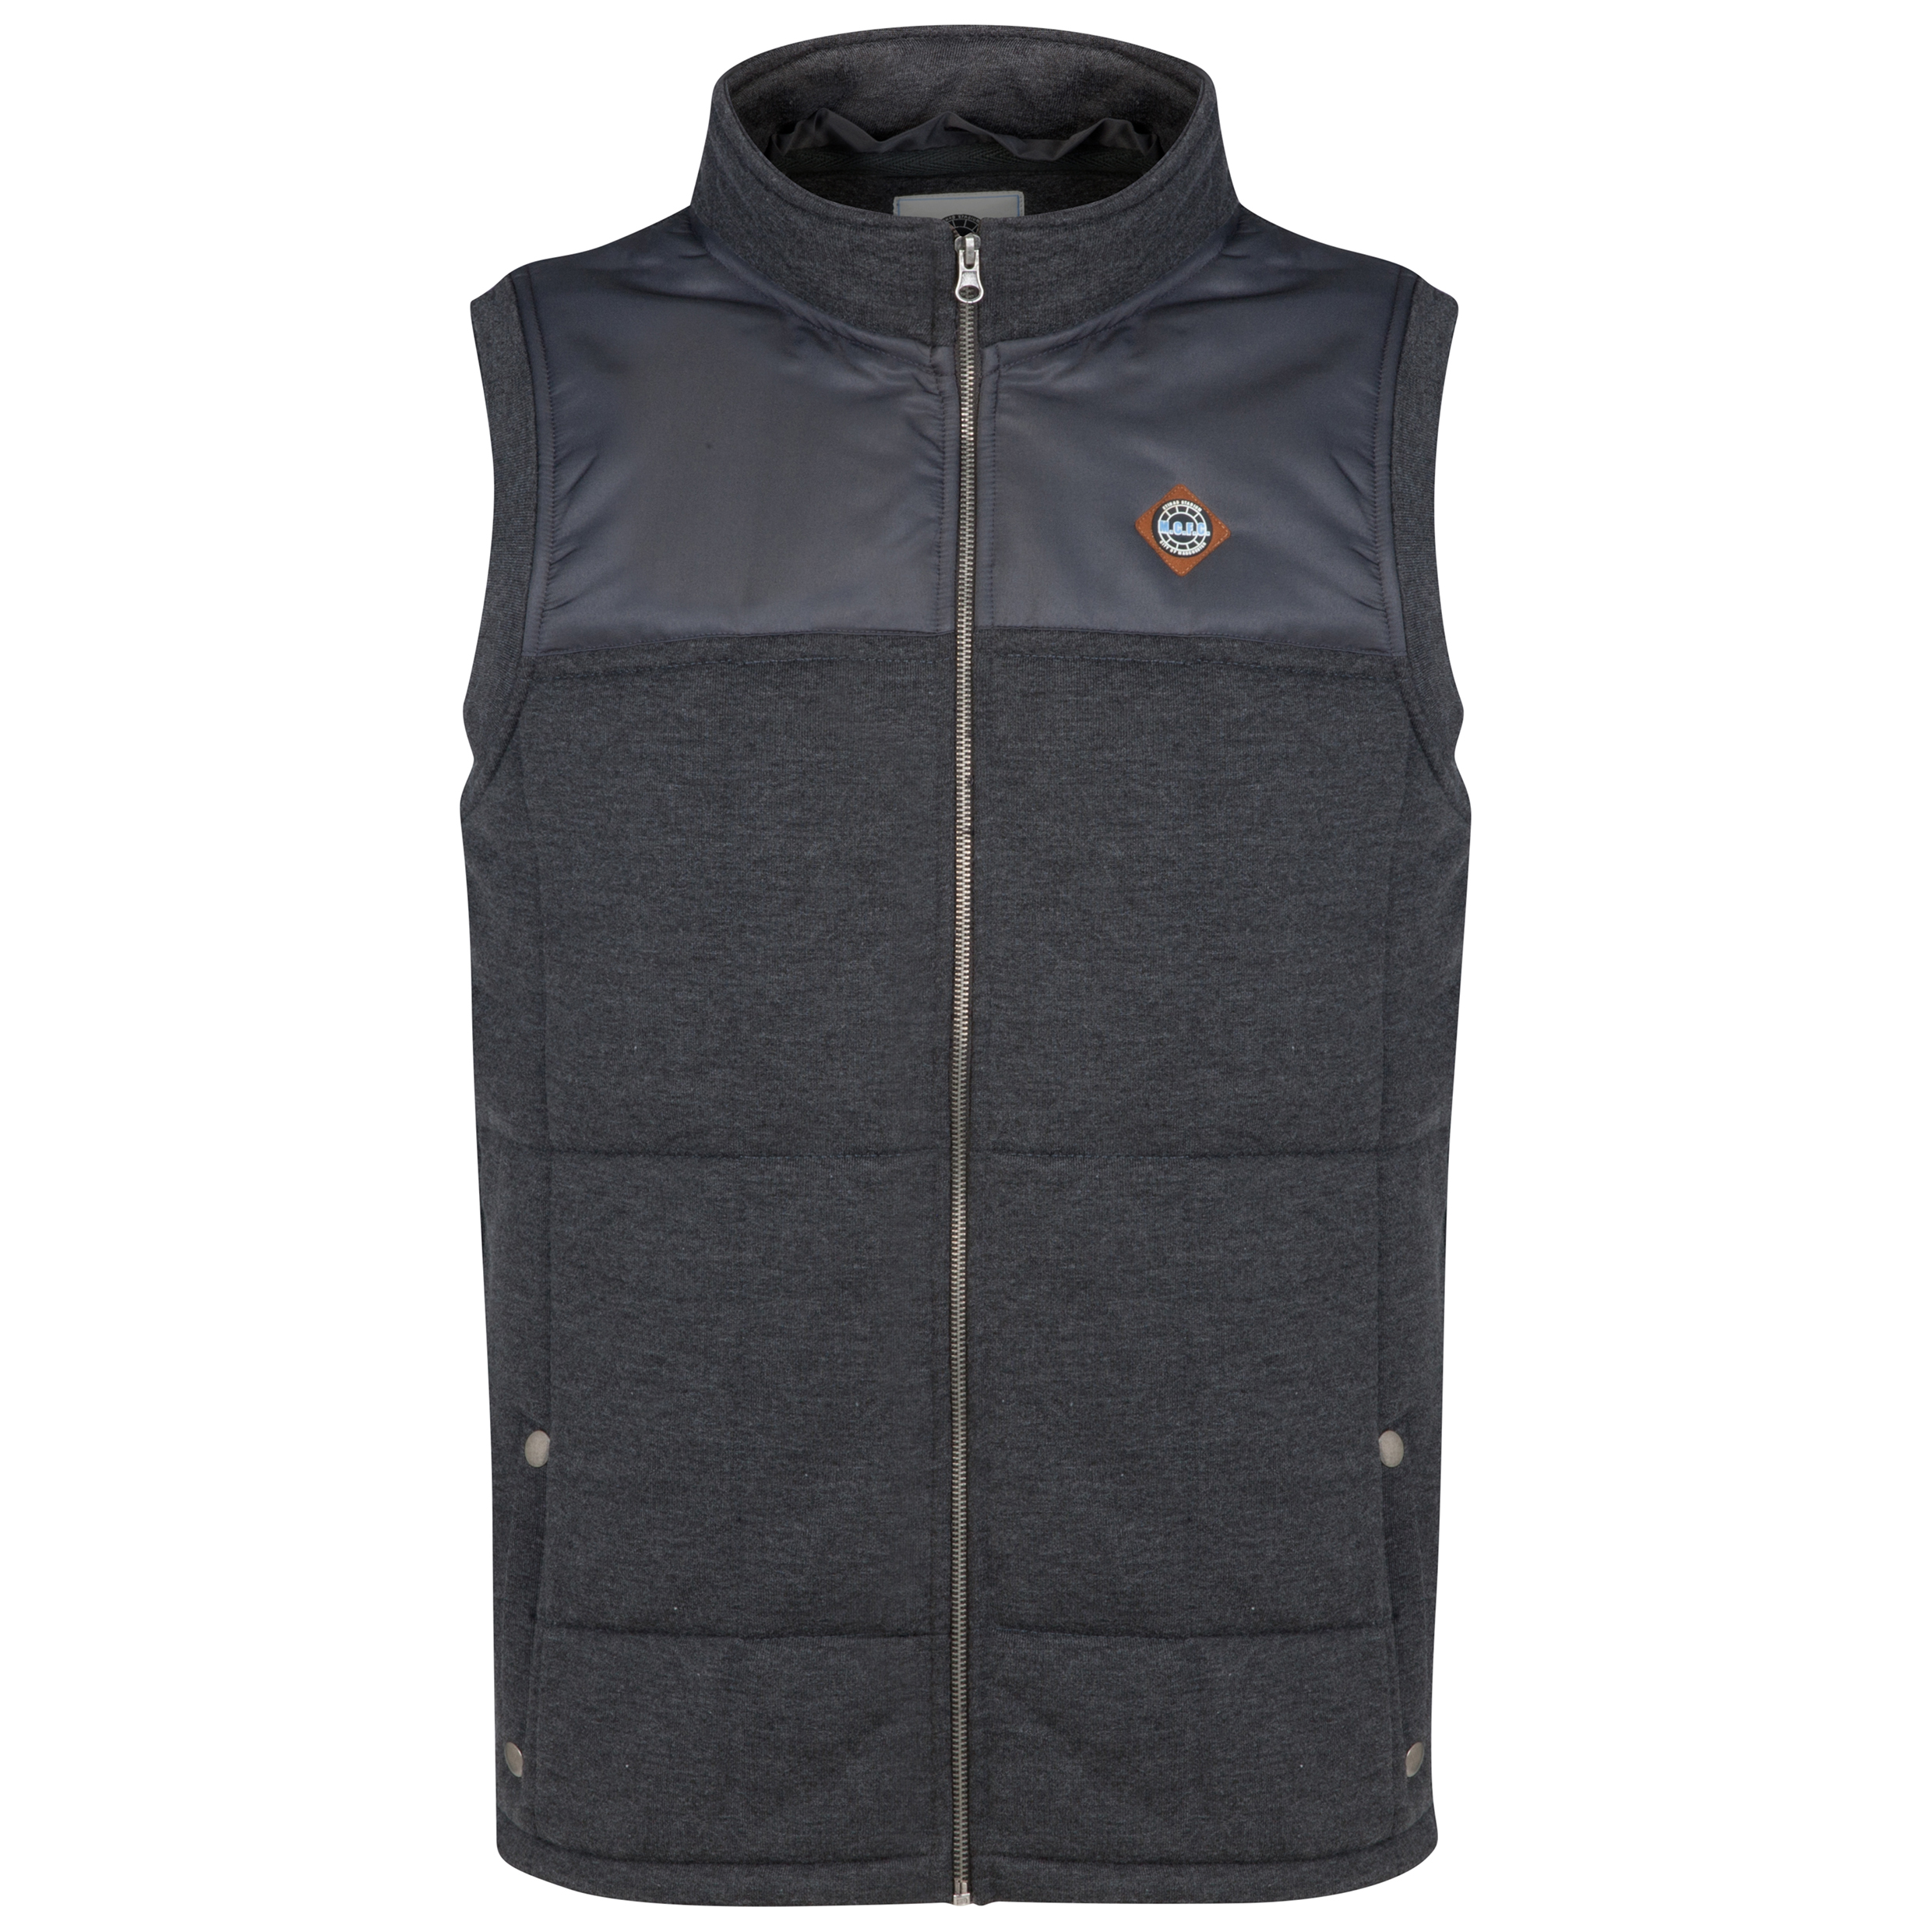 Manchester City Gilet - Charcoal - Mens